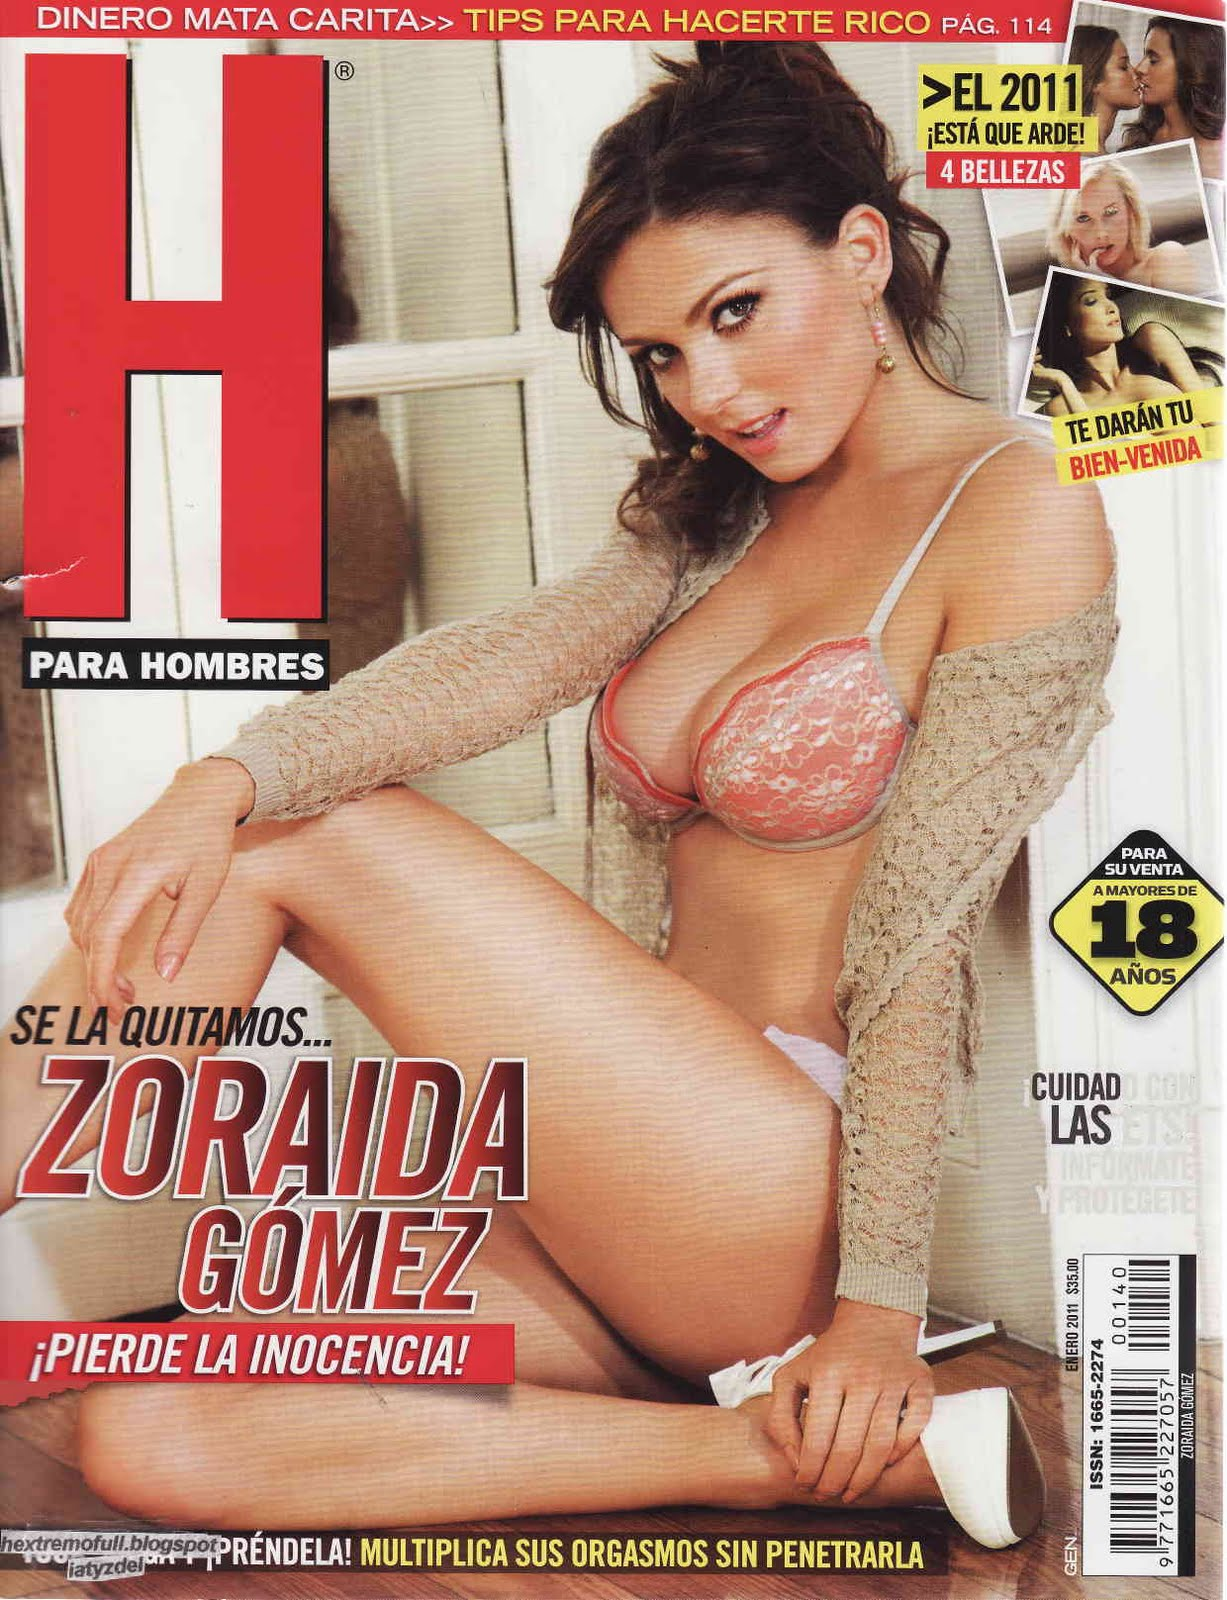 100 Photos of Angelique Boyer H Para Hombres Extremo